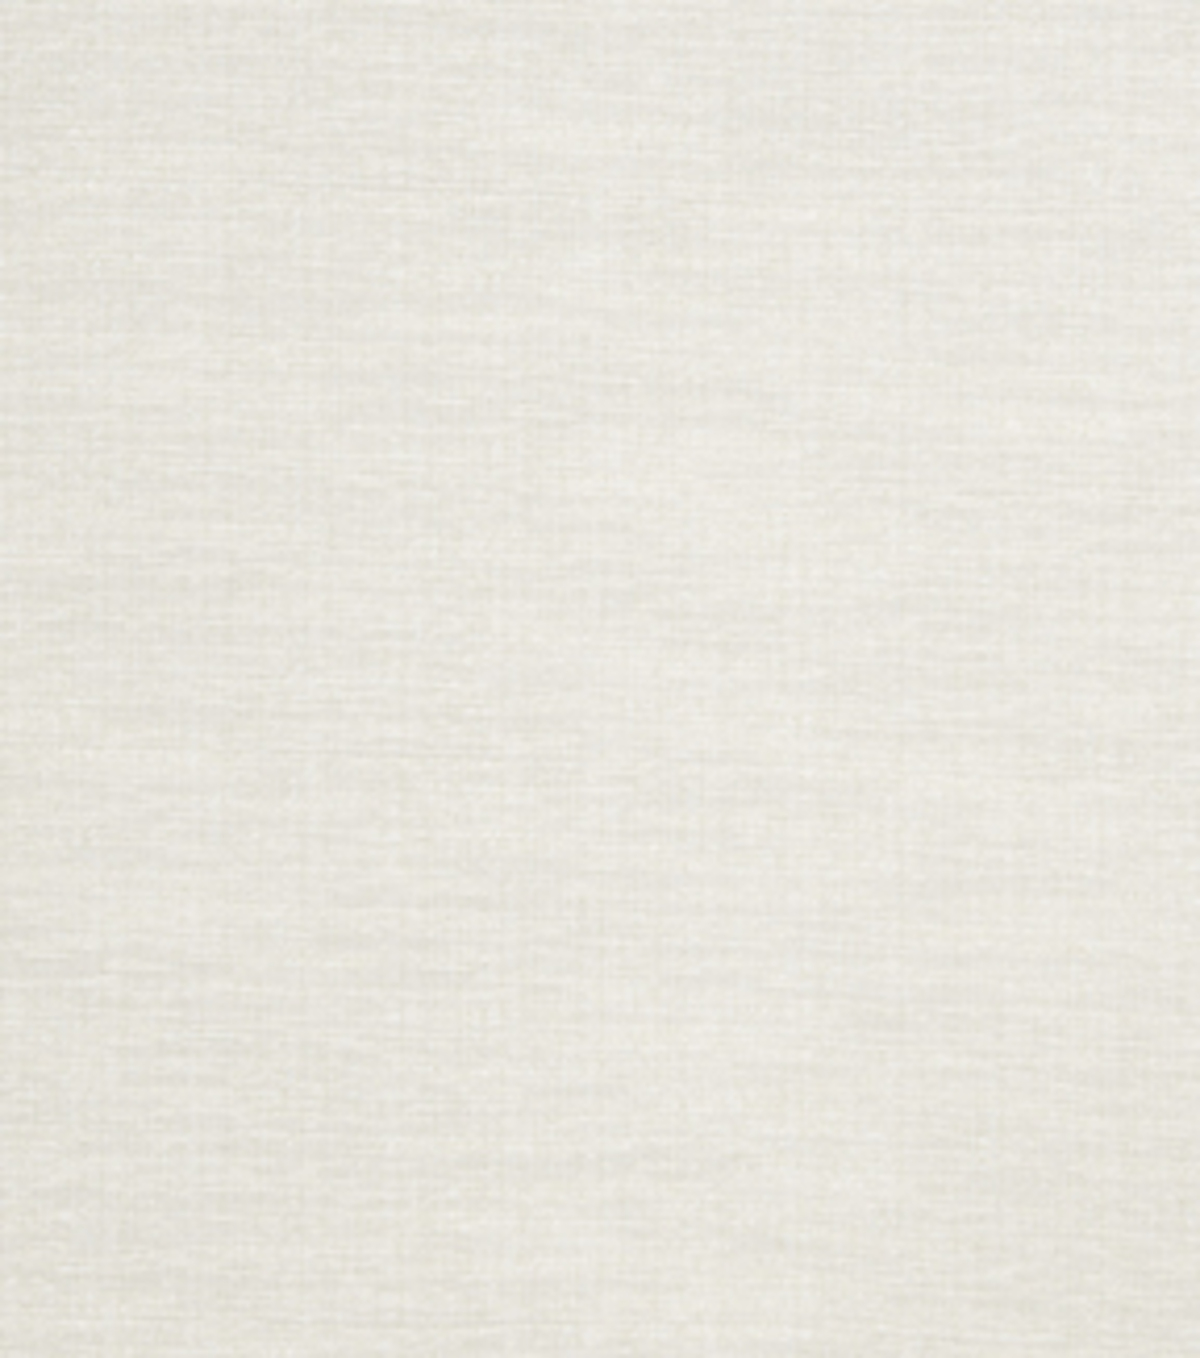 Home Decor 8\u0022x8\u0022 Fabric Swatch-Signature Series Texture Marble